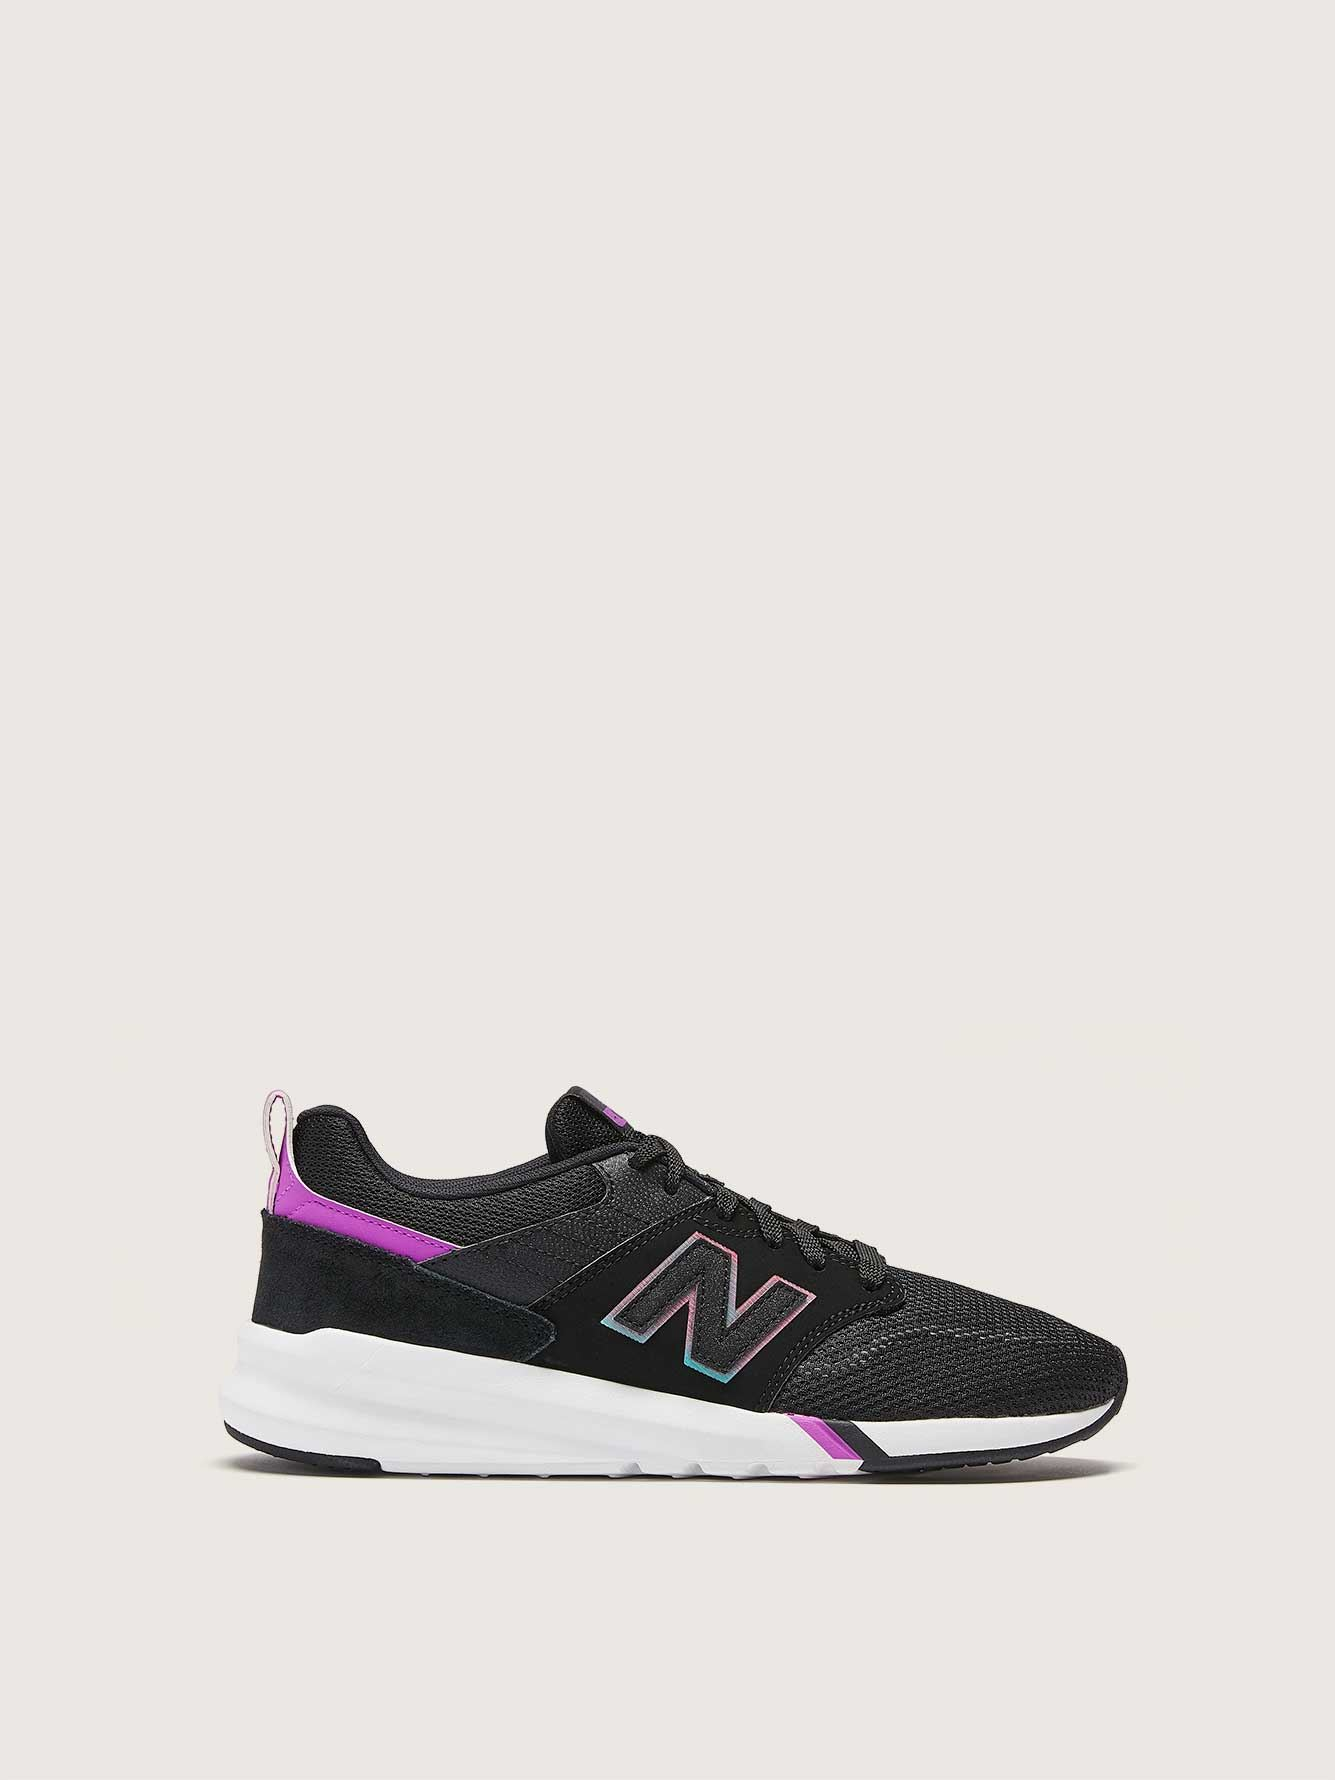 New Balance, Moderne rétro - Chaussures sport, pieds larges